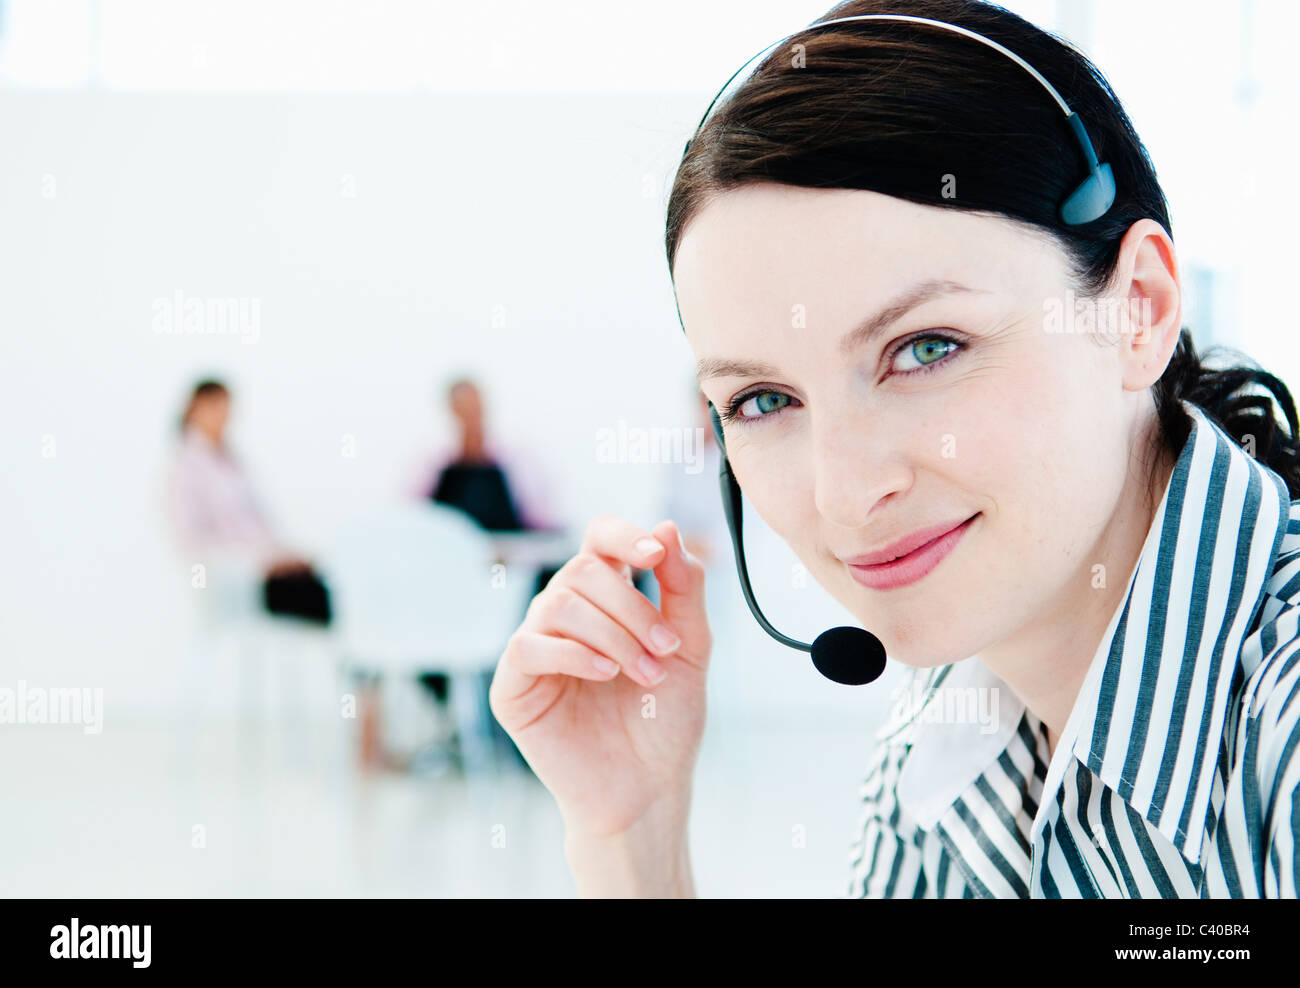 Confident tele sales woman and team - Stock Image